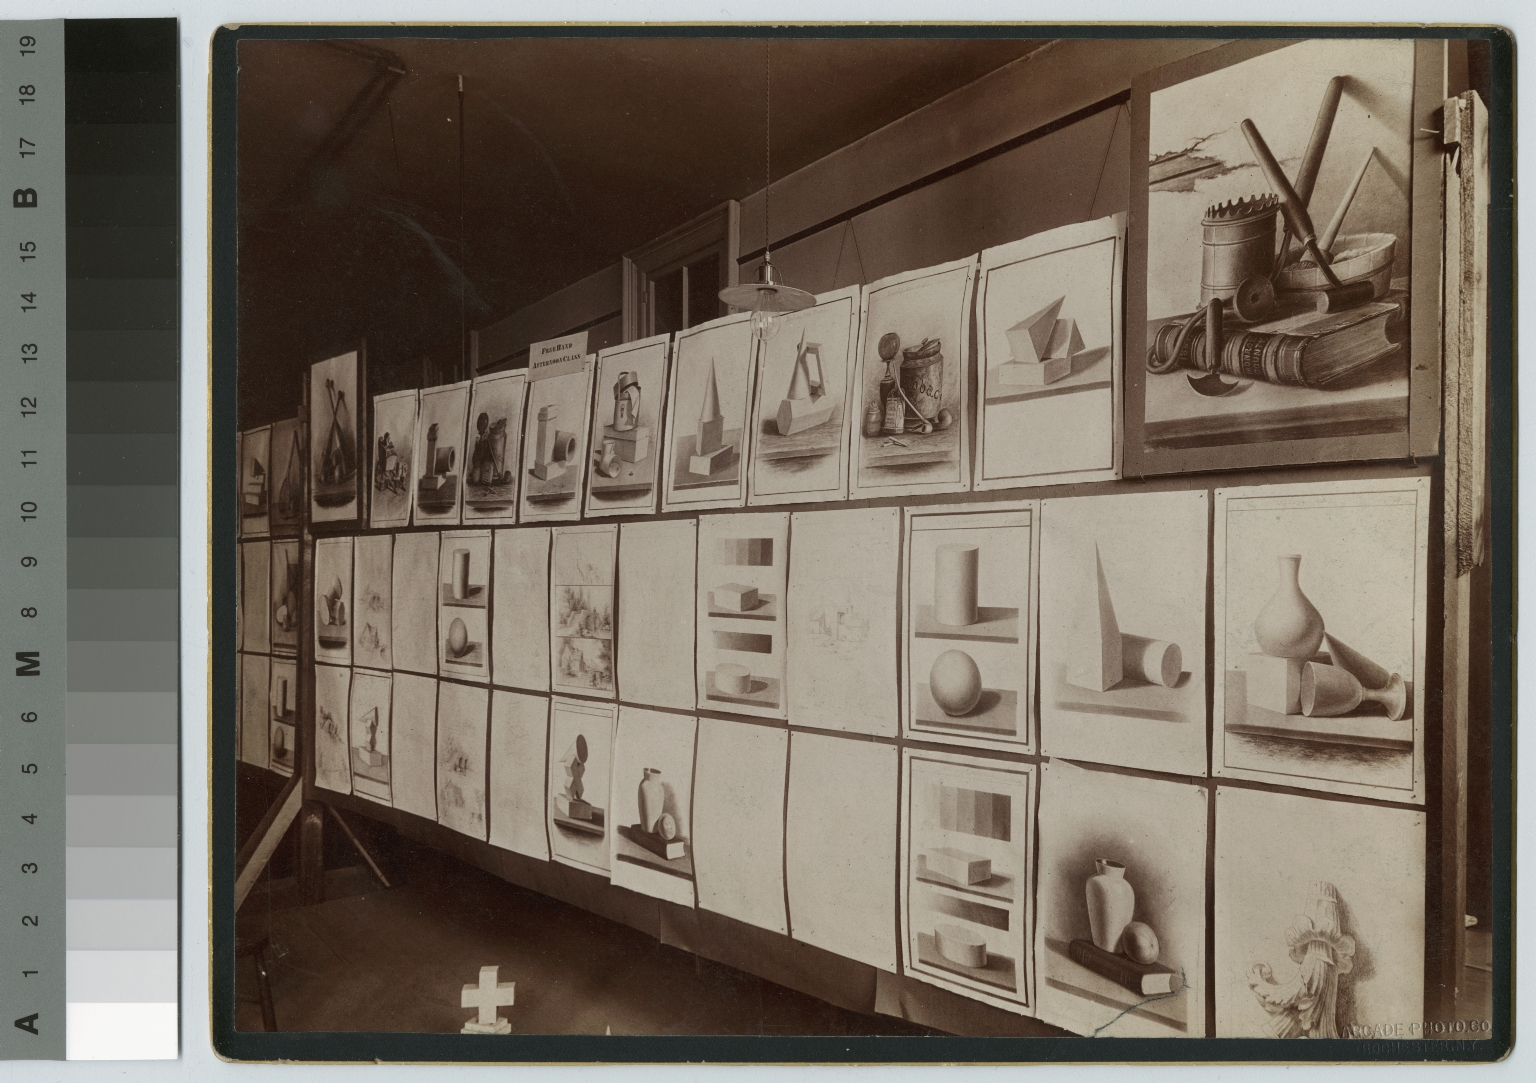 Academics, art and design, interior view of an exhibition of student drawings, [1900-1920]